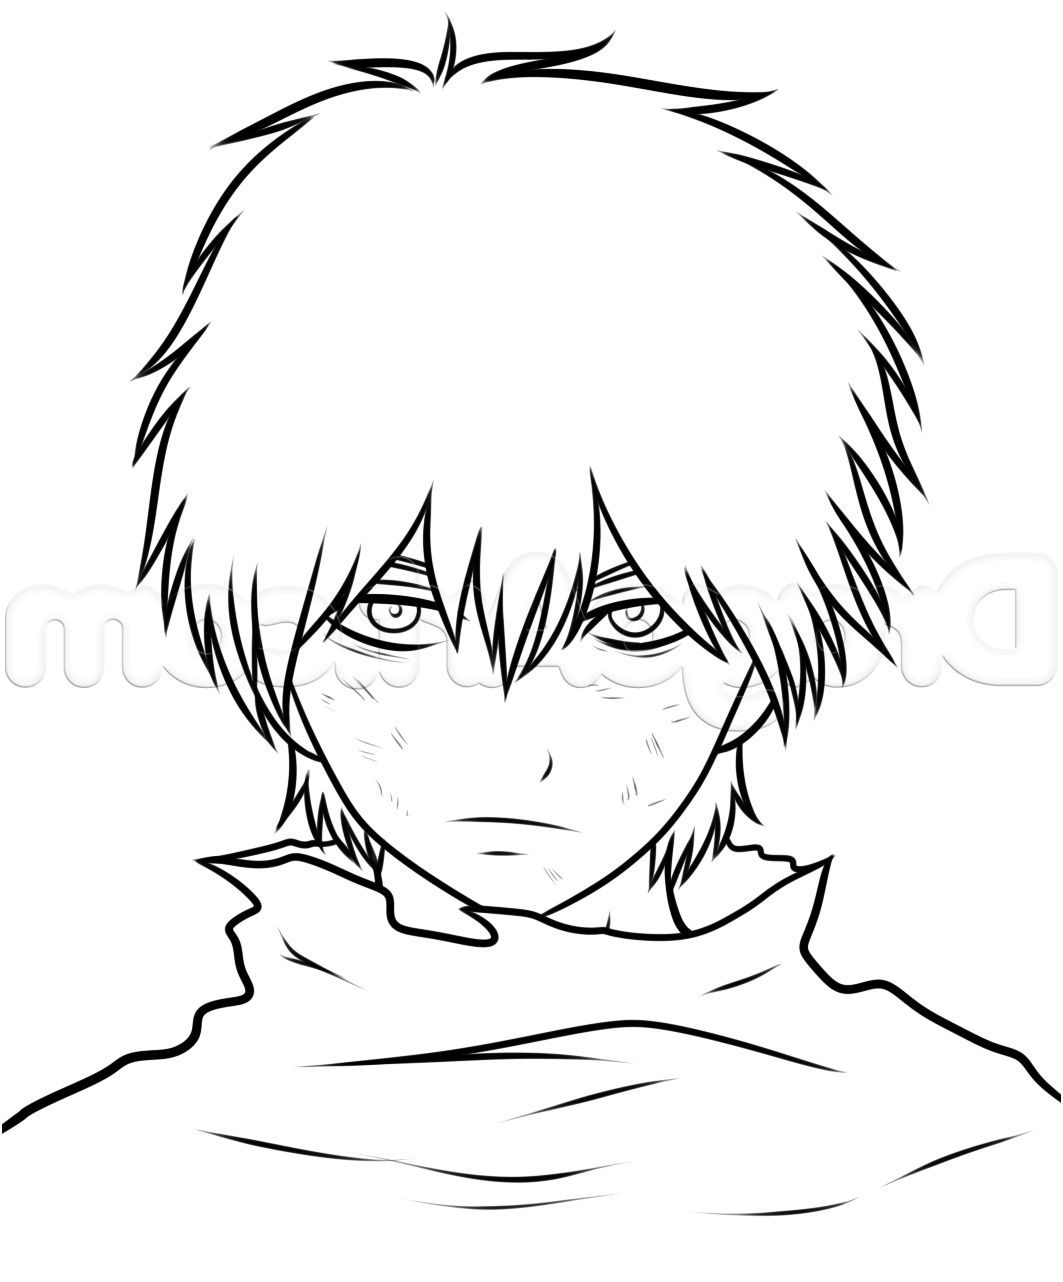 10 Intelligent Tokyo Ghoul Coloriage Photos Fonds D Ecran Tokyo Ghoul Coloriage Dessins D Anime